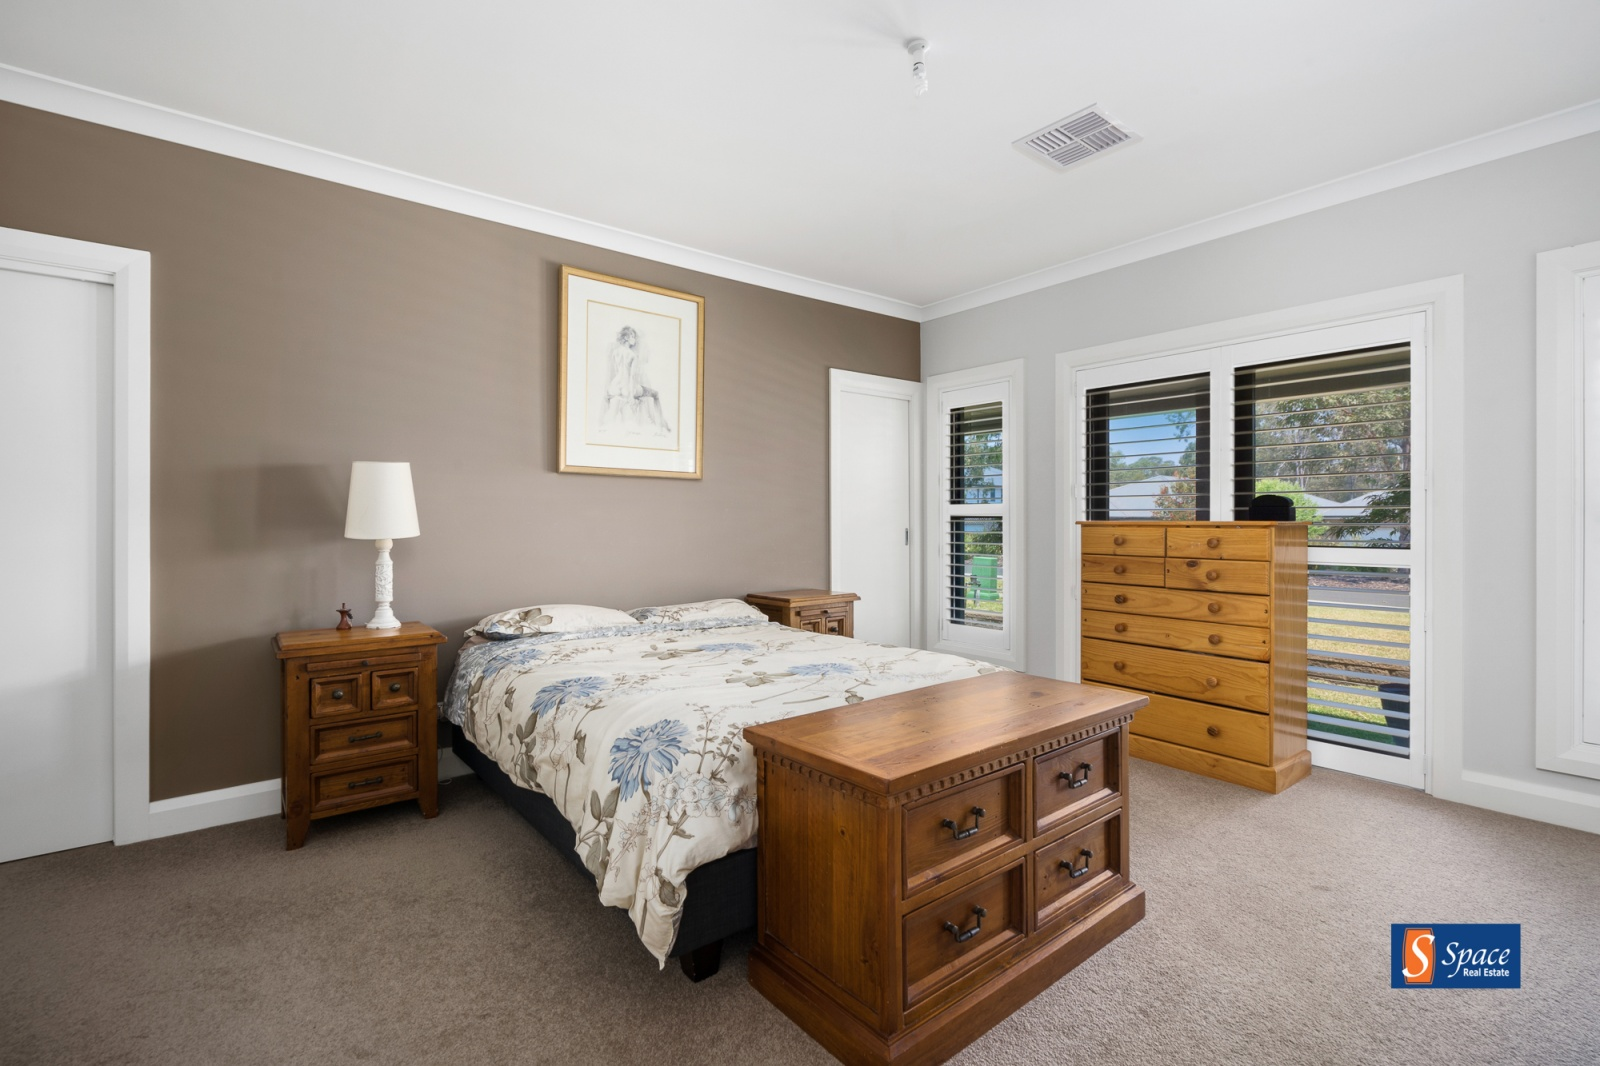 16 Ritchie Street,Cobbitty,NSW,5 Bedrooms Bedrooms,4 BathroomsBathrooms,House,Ritchie Street,1515